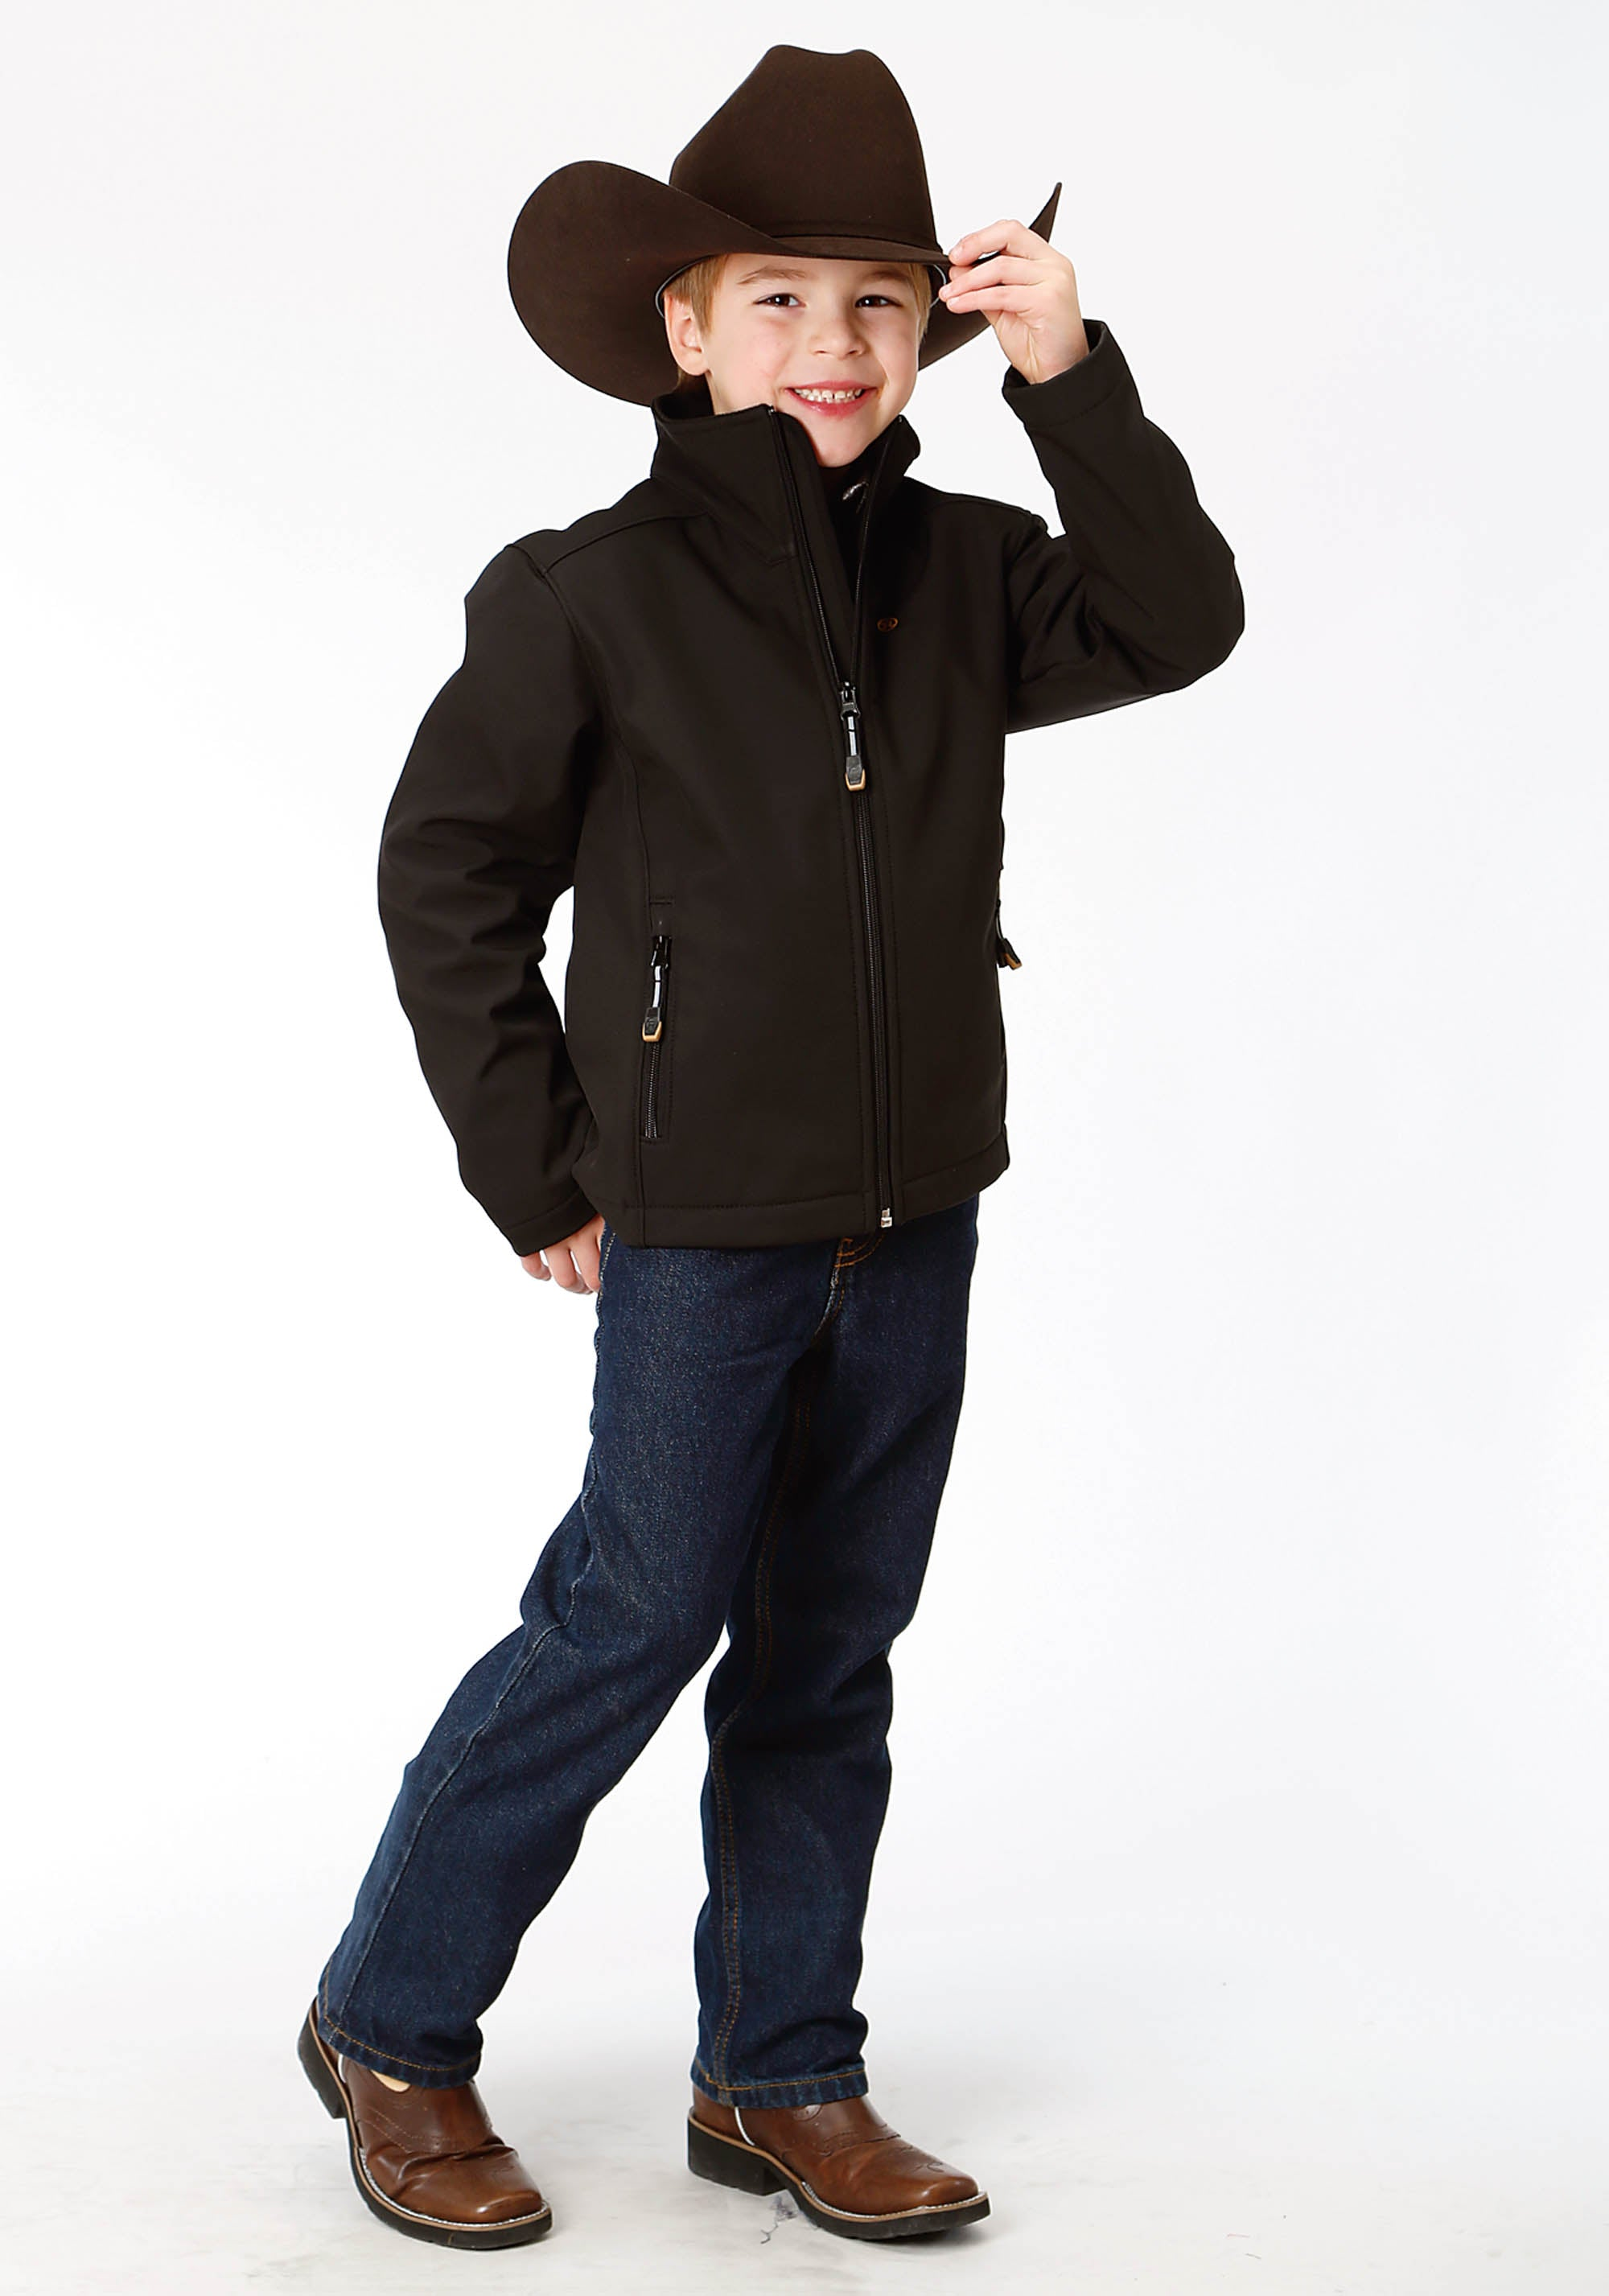 ROPER BOYS BLACK 9429 BLACK W/BLACK FLEECE BACKING ROPER OUTERWEAR- BOY'S JACKET